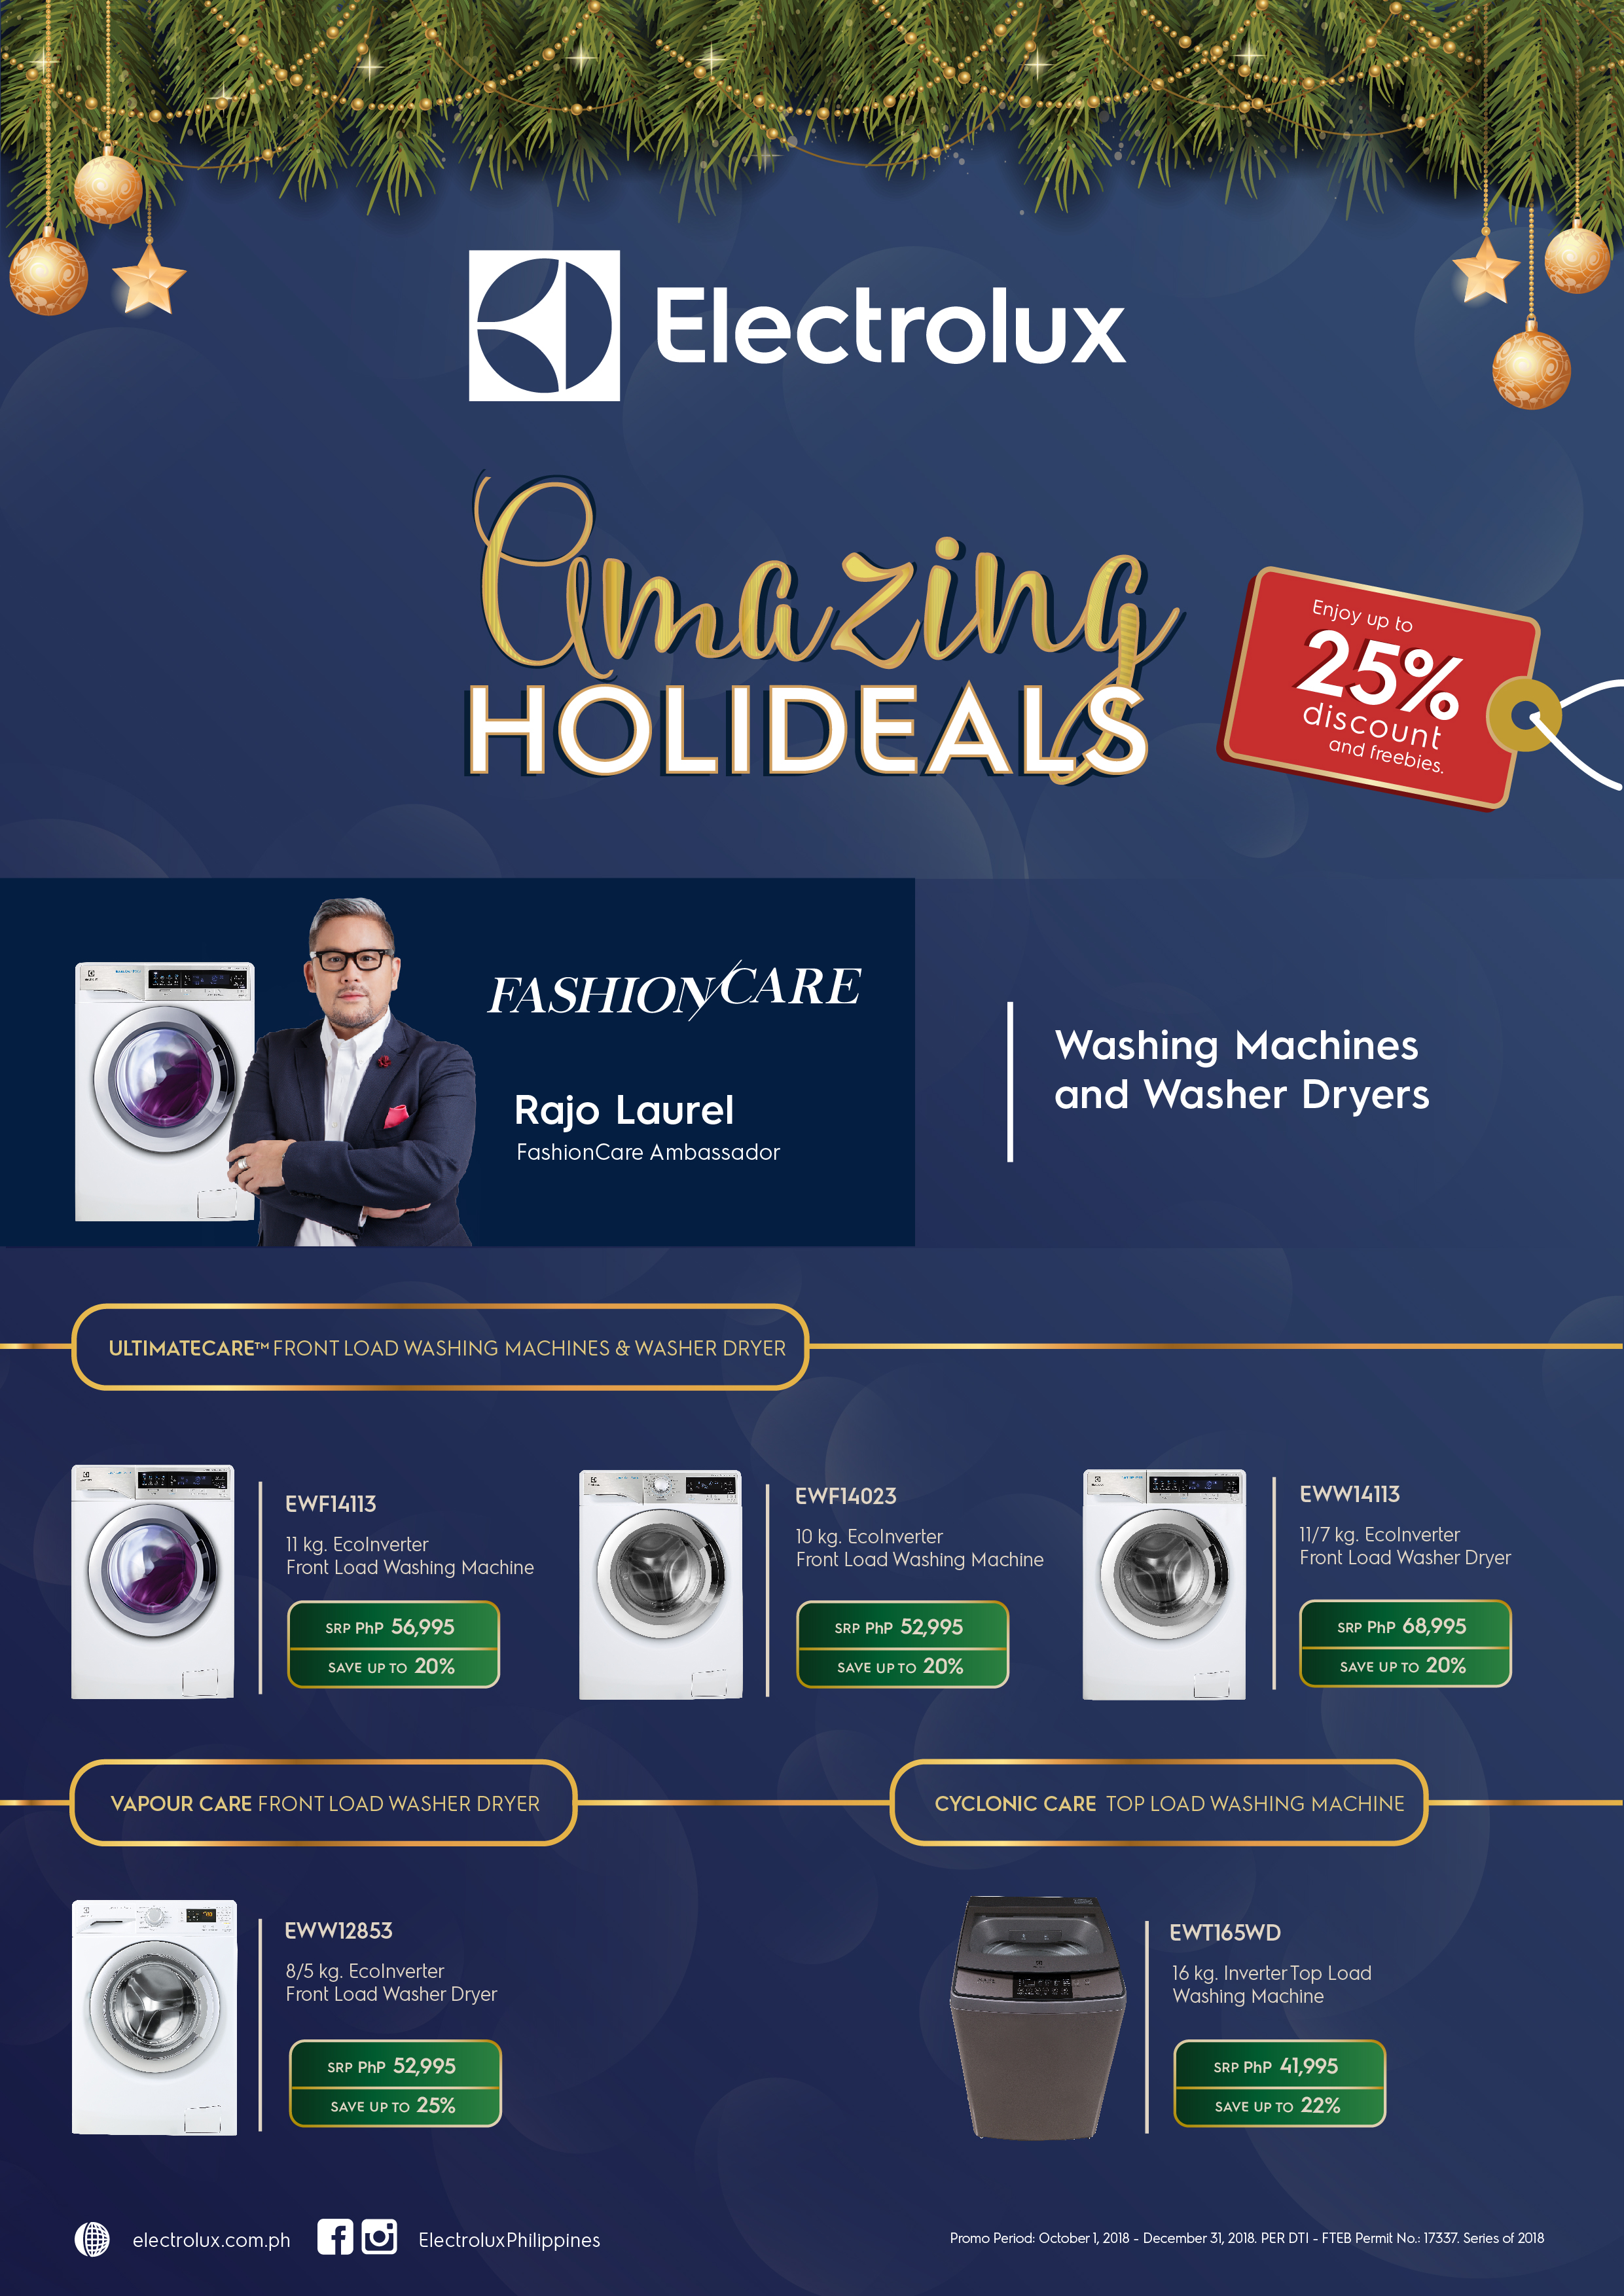 Don't forget to share the artwork and link ( https://www.electrolux.com.ph/promotions/amazing-holideals-laundry/ ) to Electrolux's Amazing Holideals promo on your blog post.